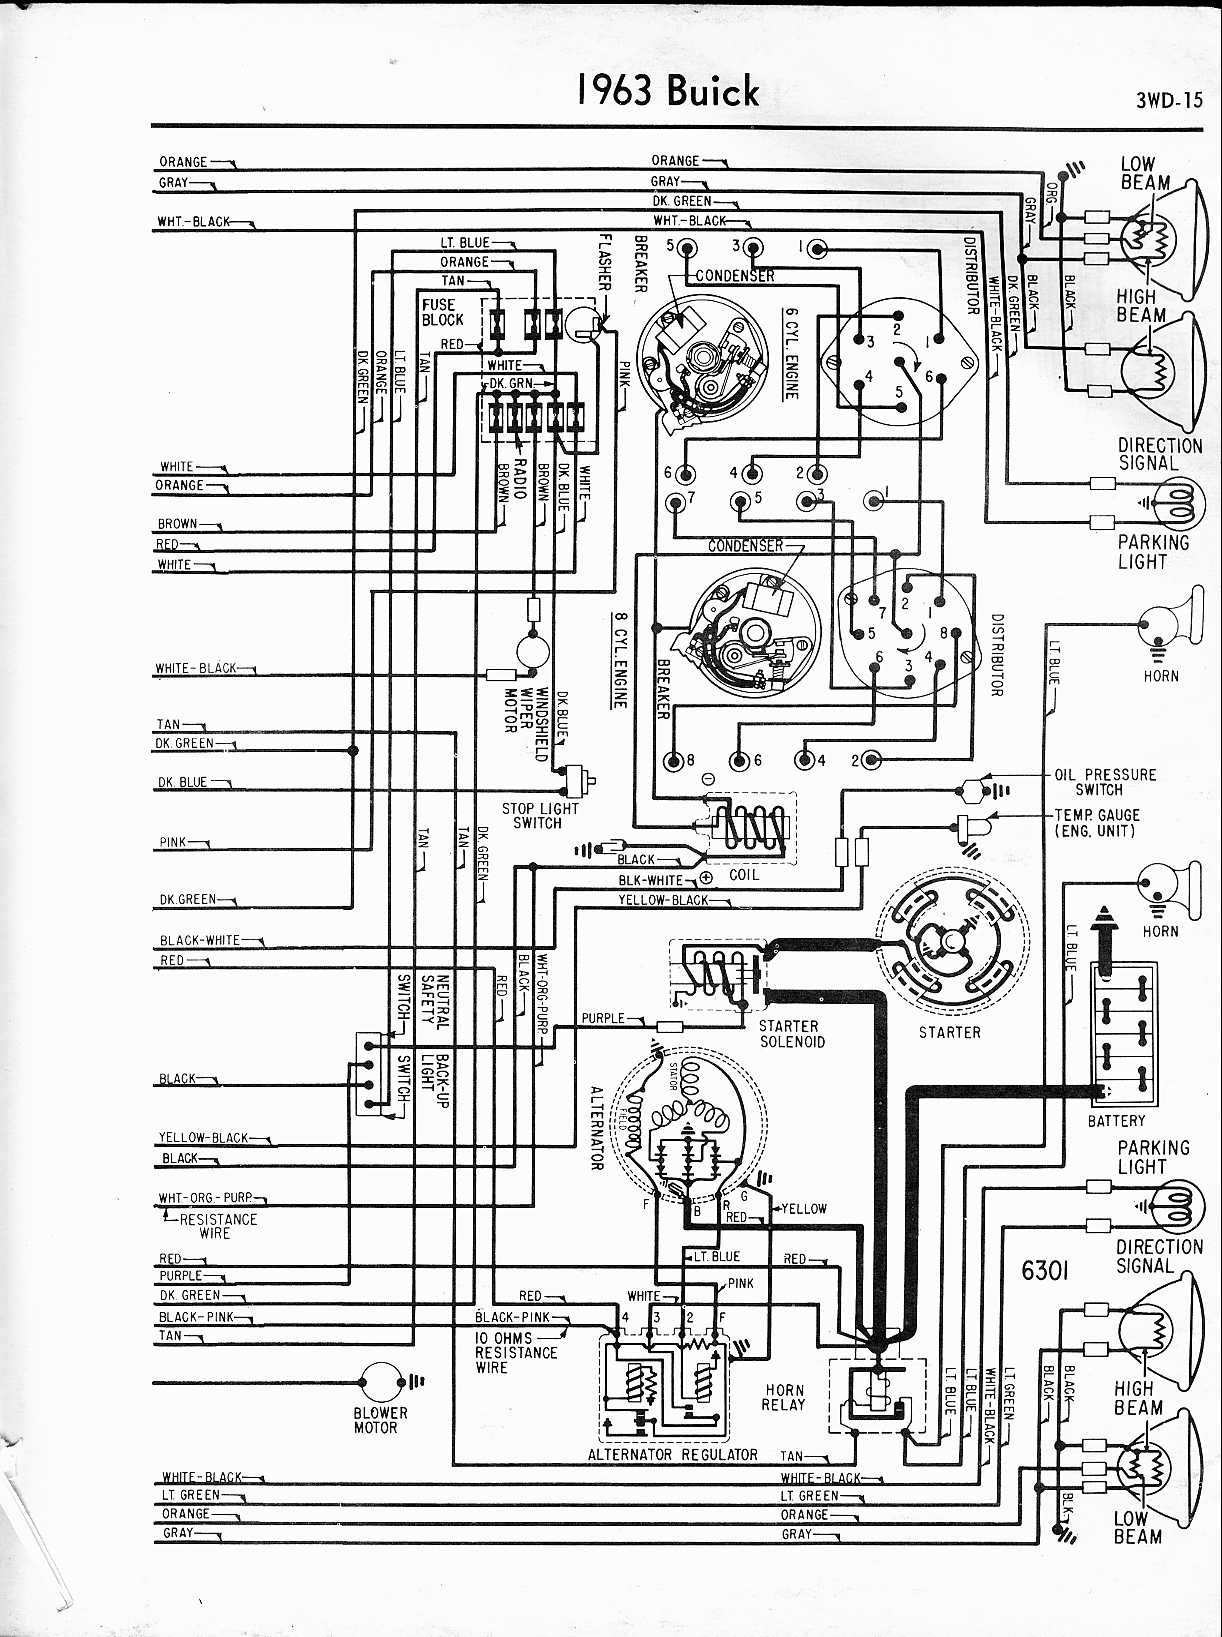 Buick Wiring Diagrams 1957 1965 2002 Jeep Wrangler Turn Signal 1963 Special Skylark Right Half